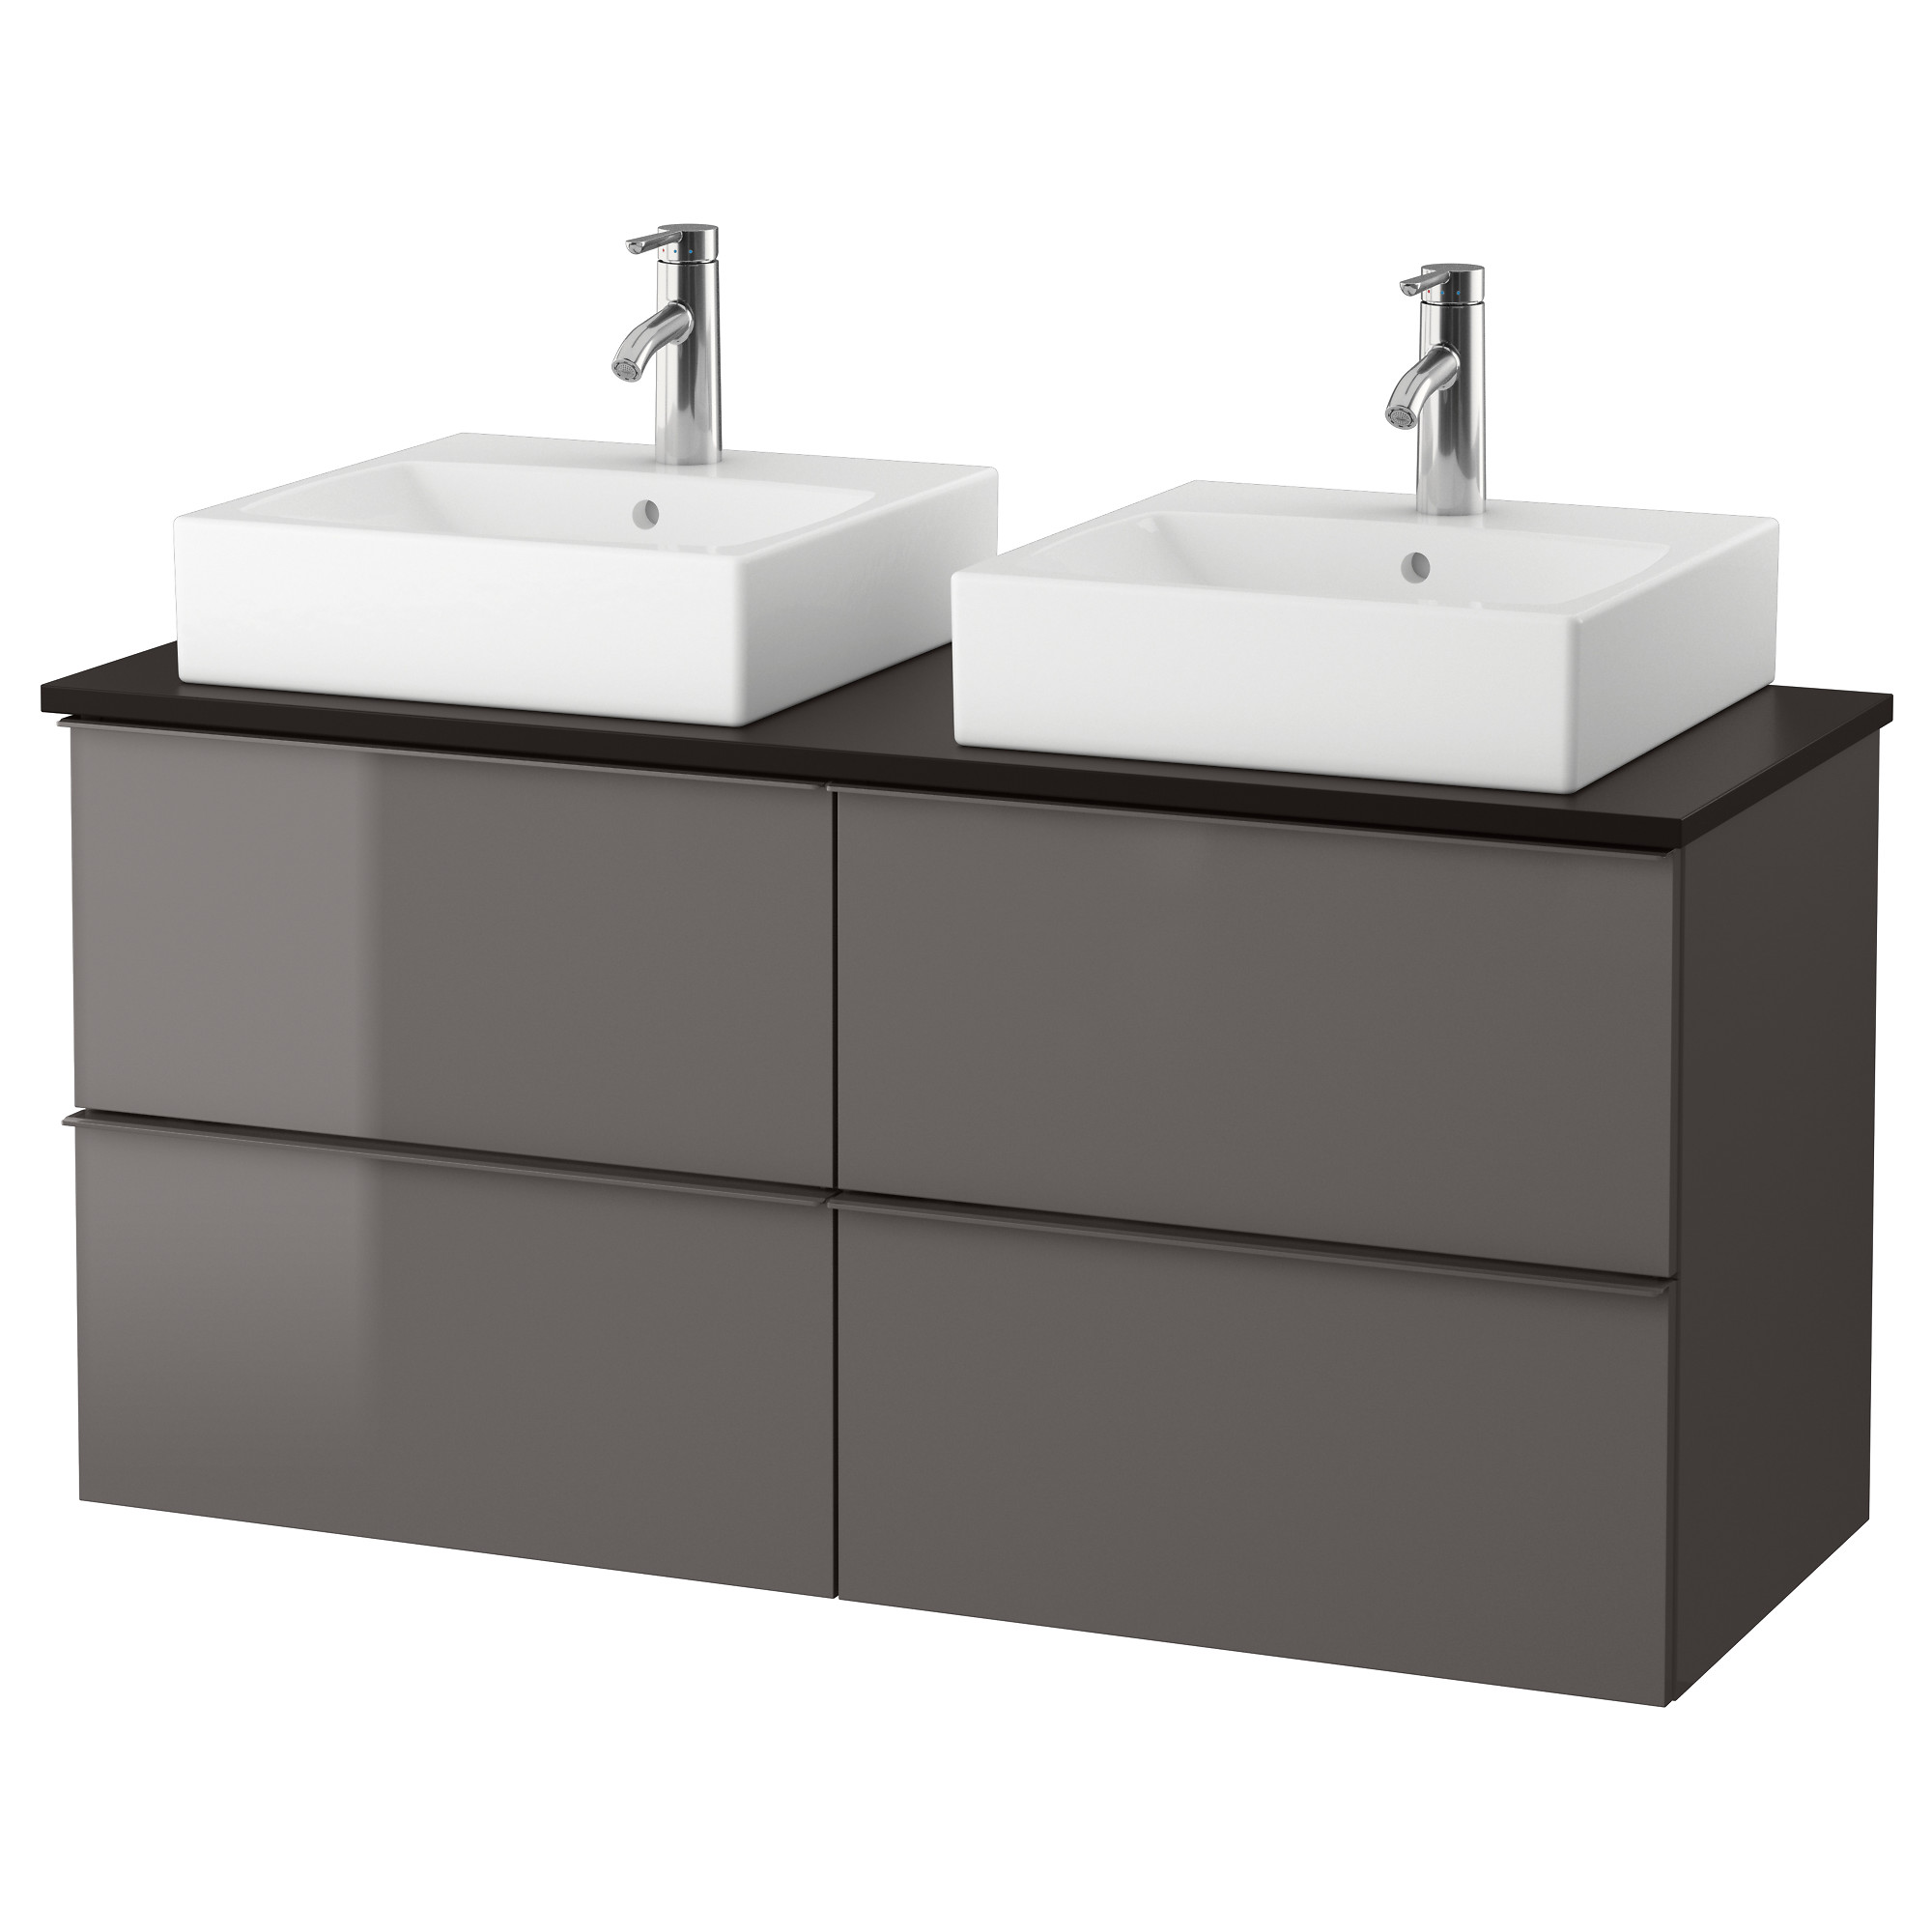 Sink and cabinet for bathroom weifeng furniture for Bathroom washbasin cabinet